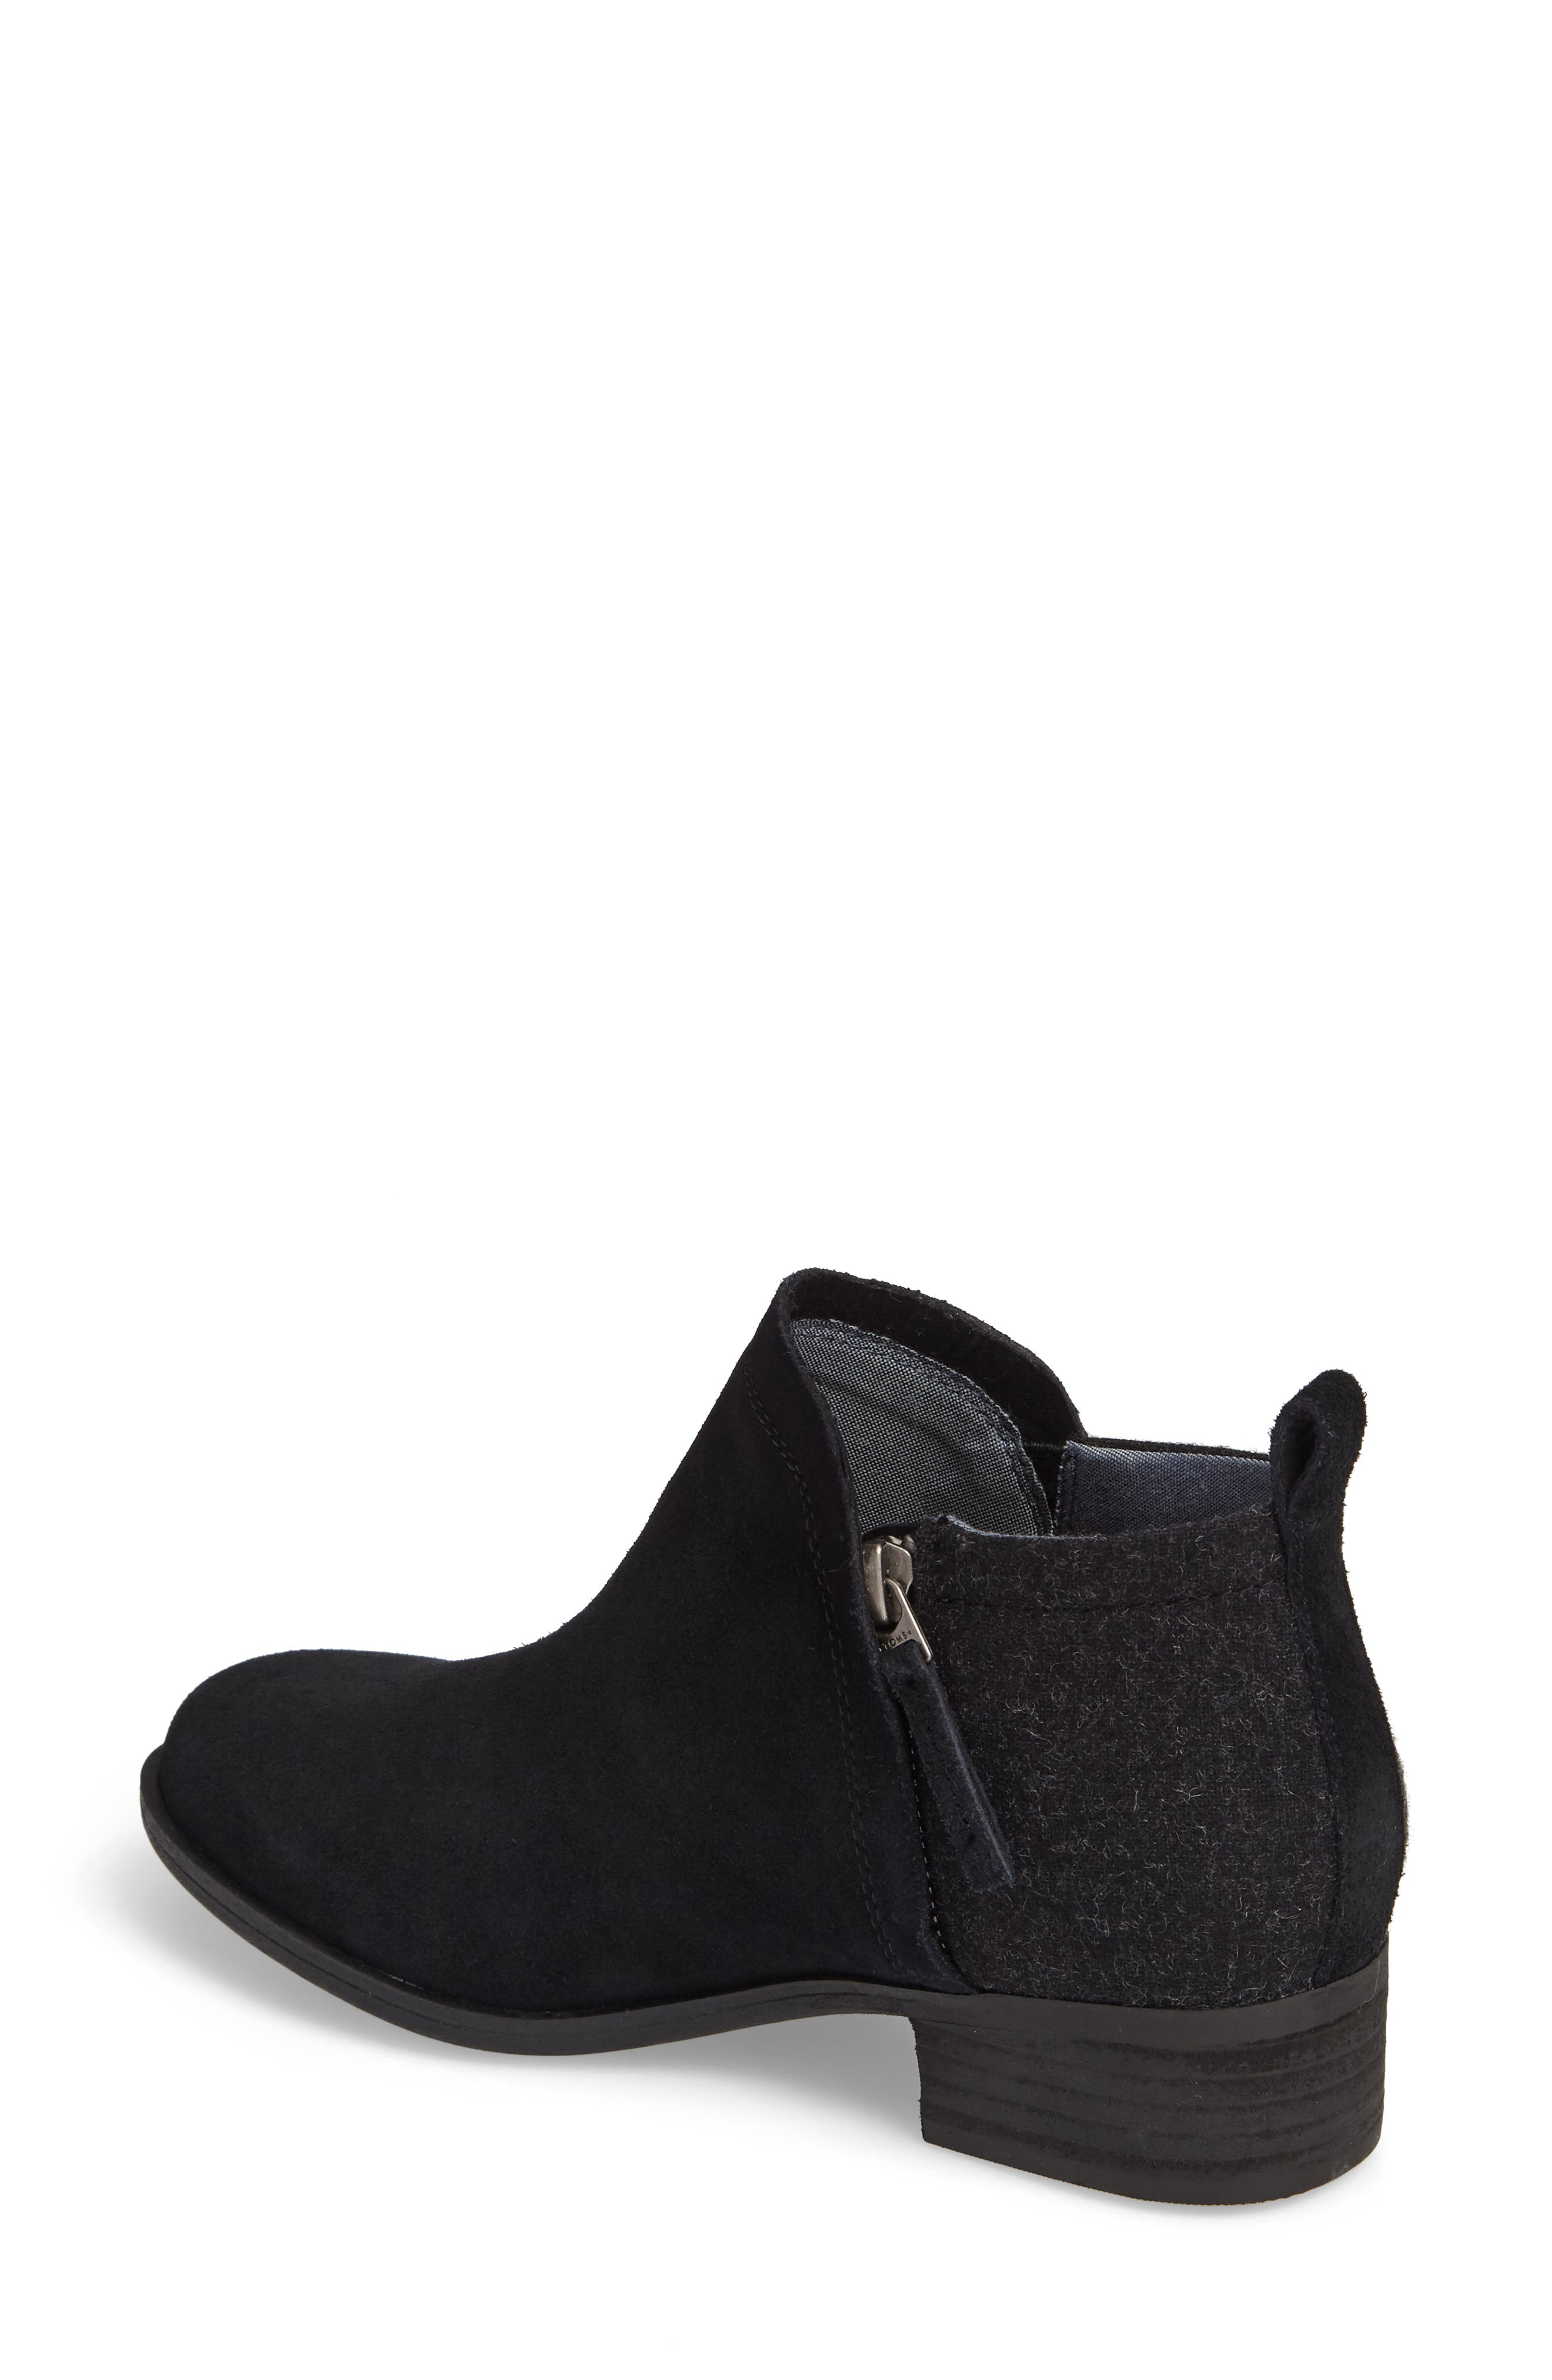 Deia Zip Bootie,                             Alternate thumbnail 12, color,